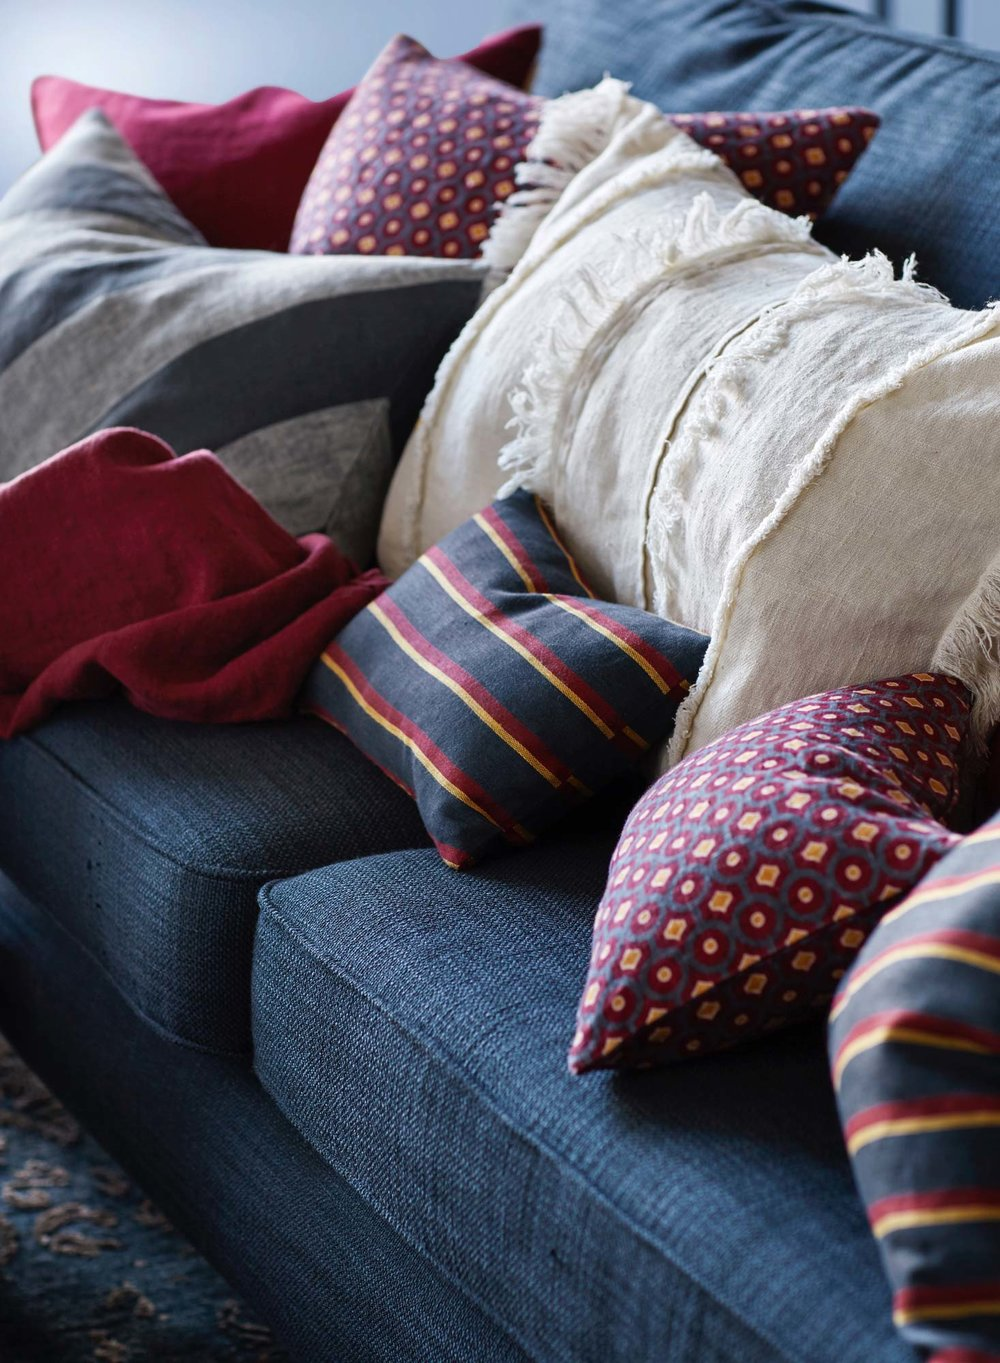 Fall couch in denim blue and maroon.